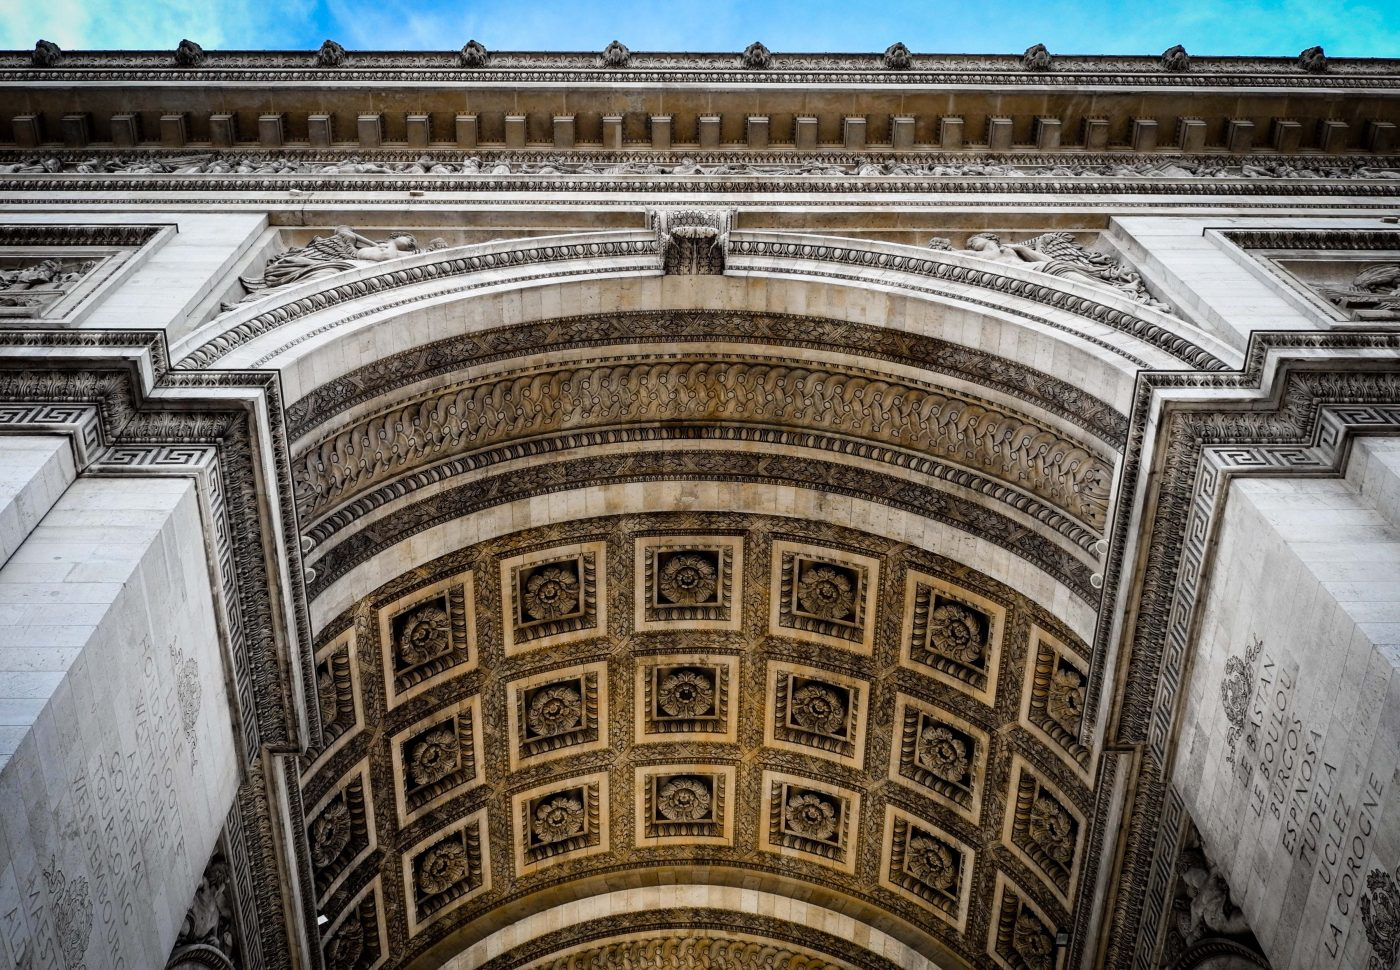 Arch Of Triupmh – Paris